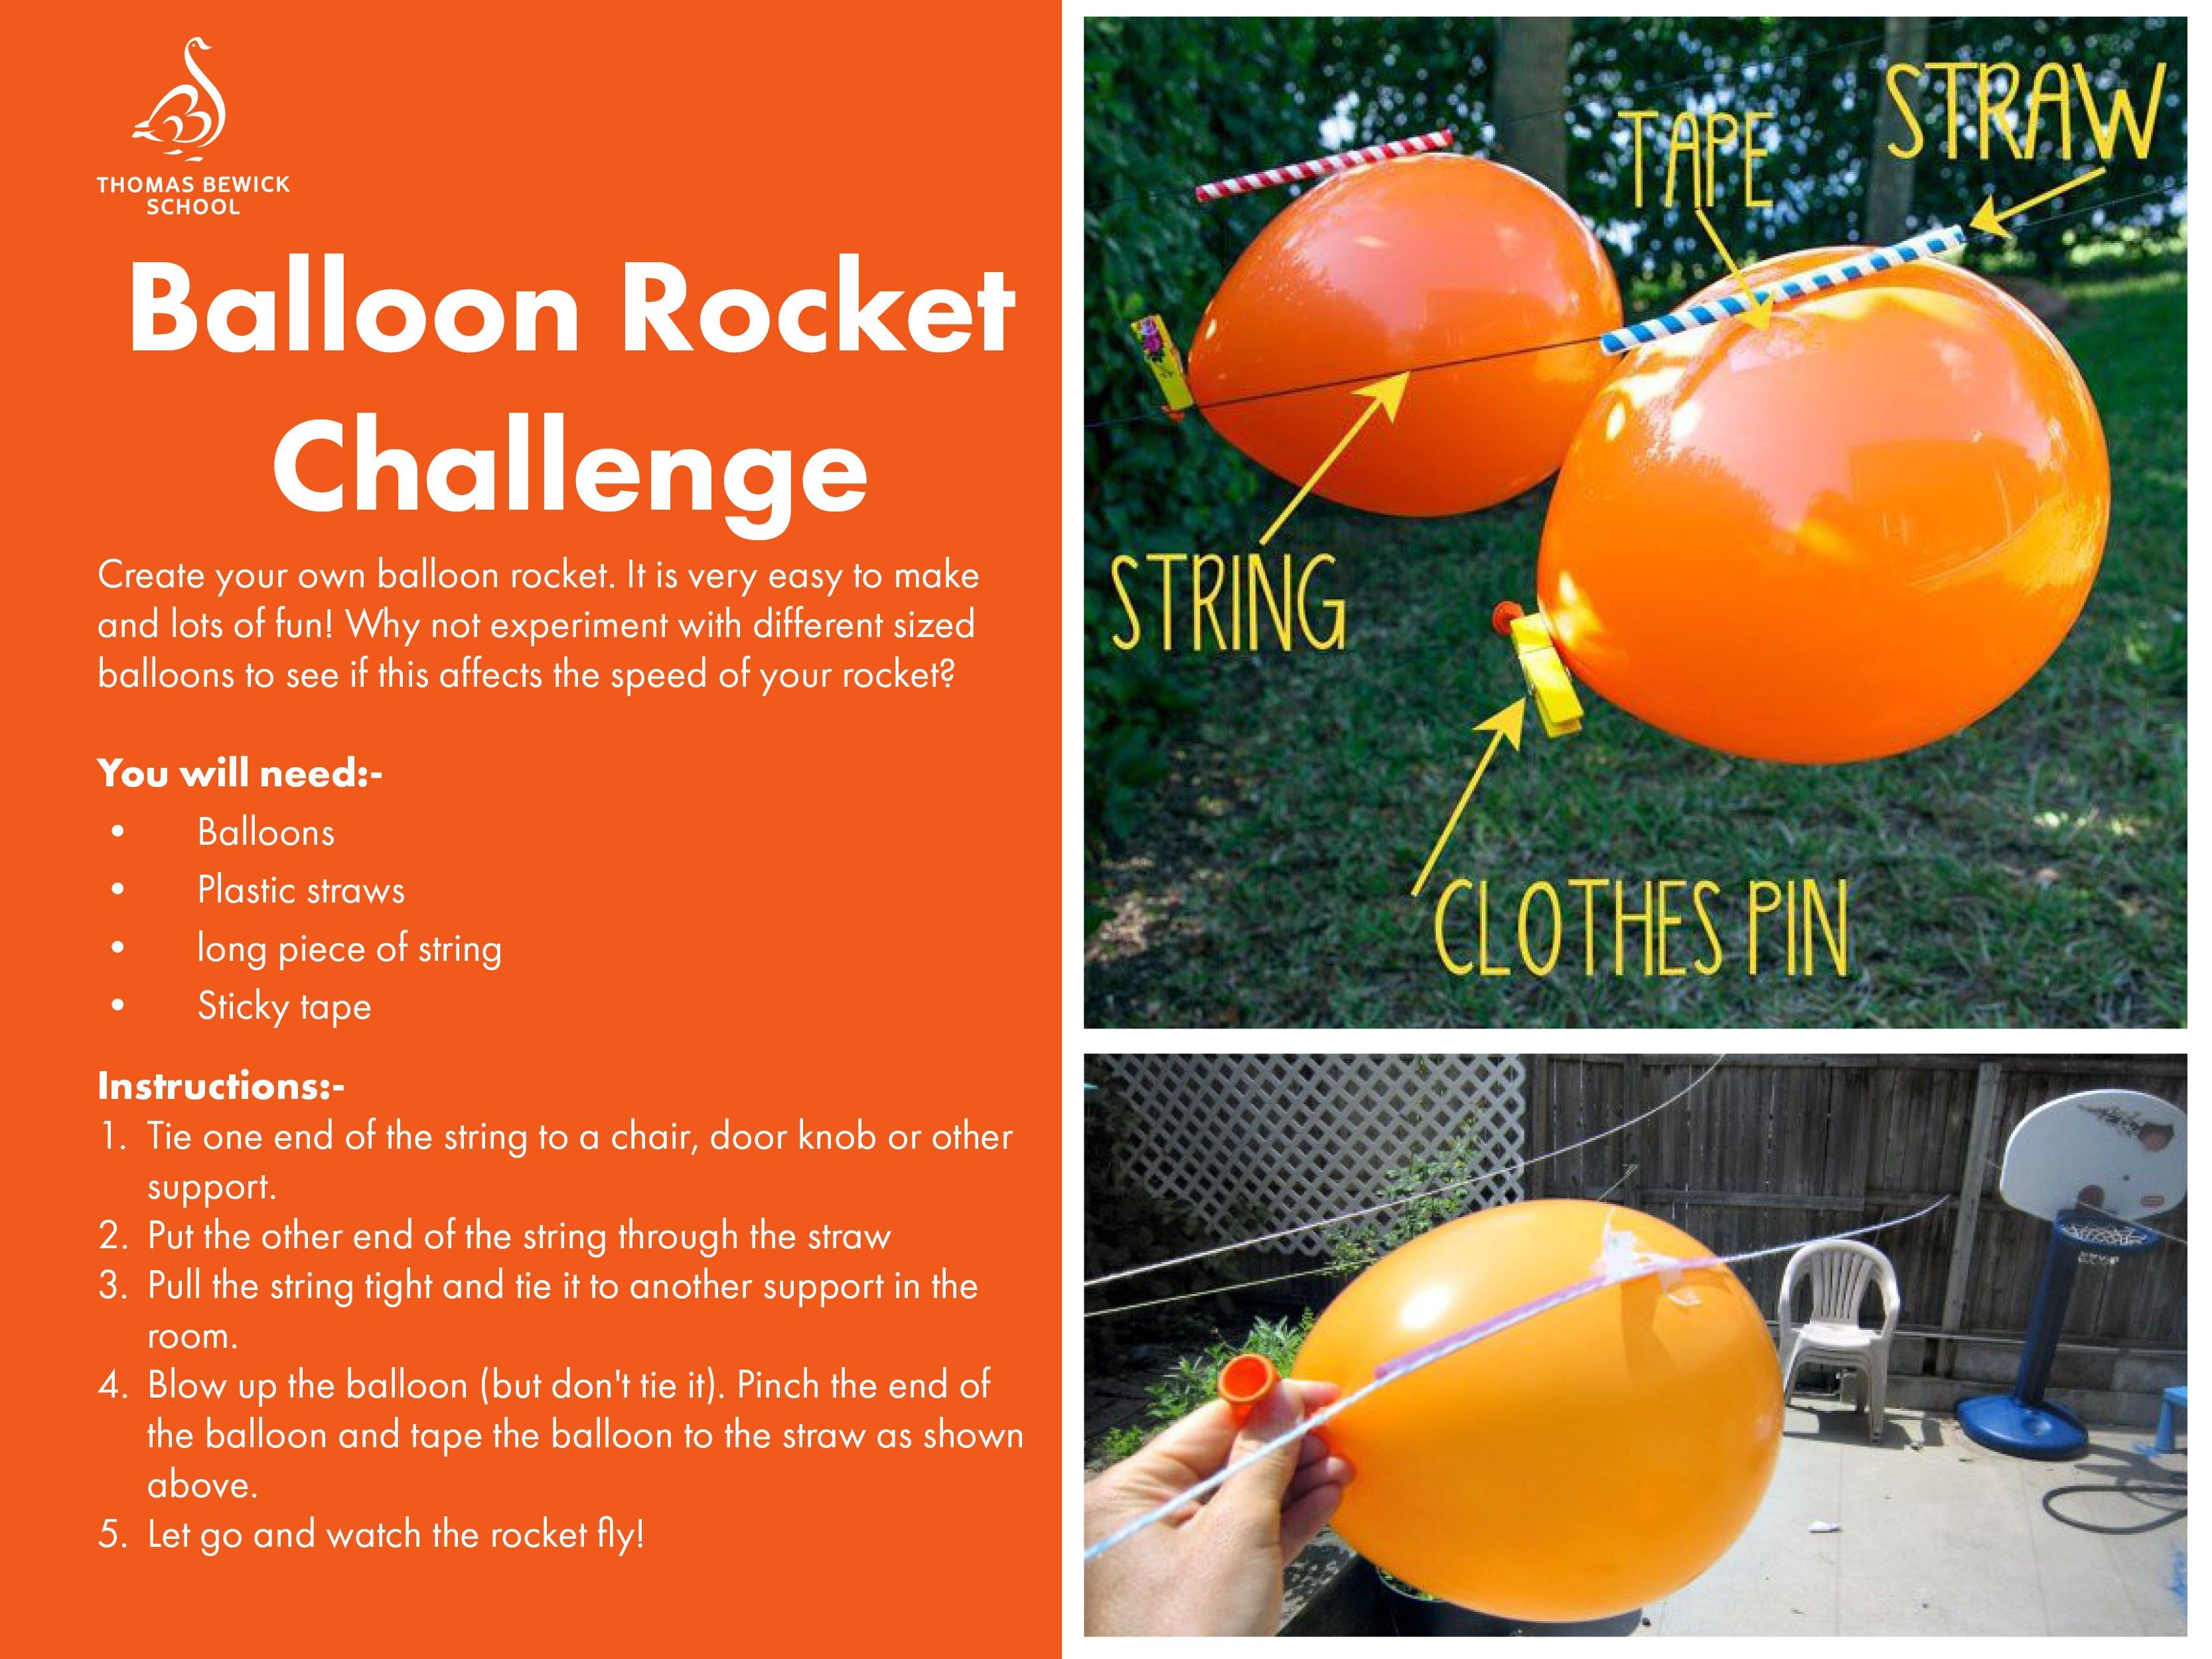 Balloon Rocket Challenge